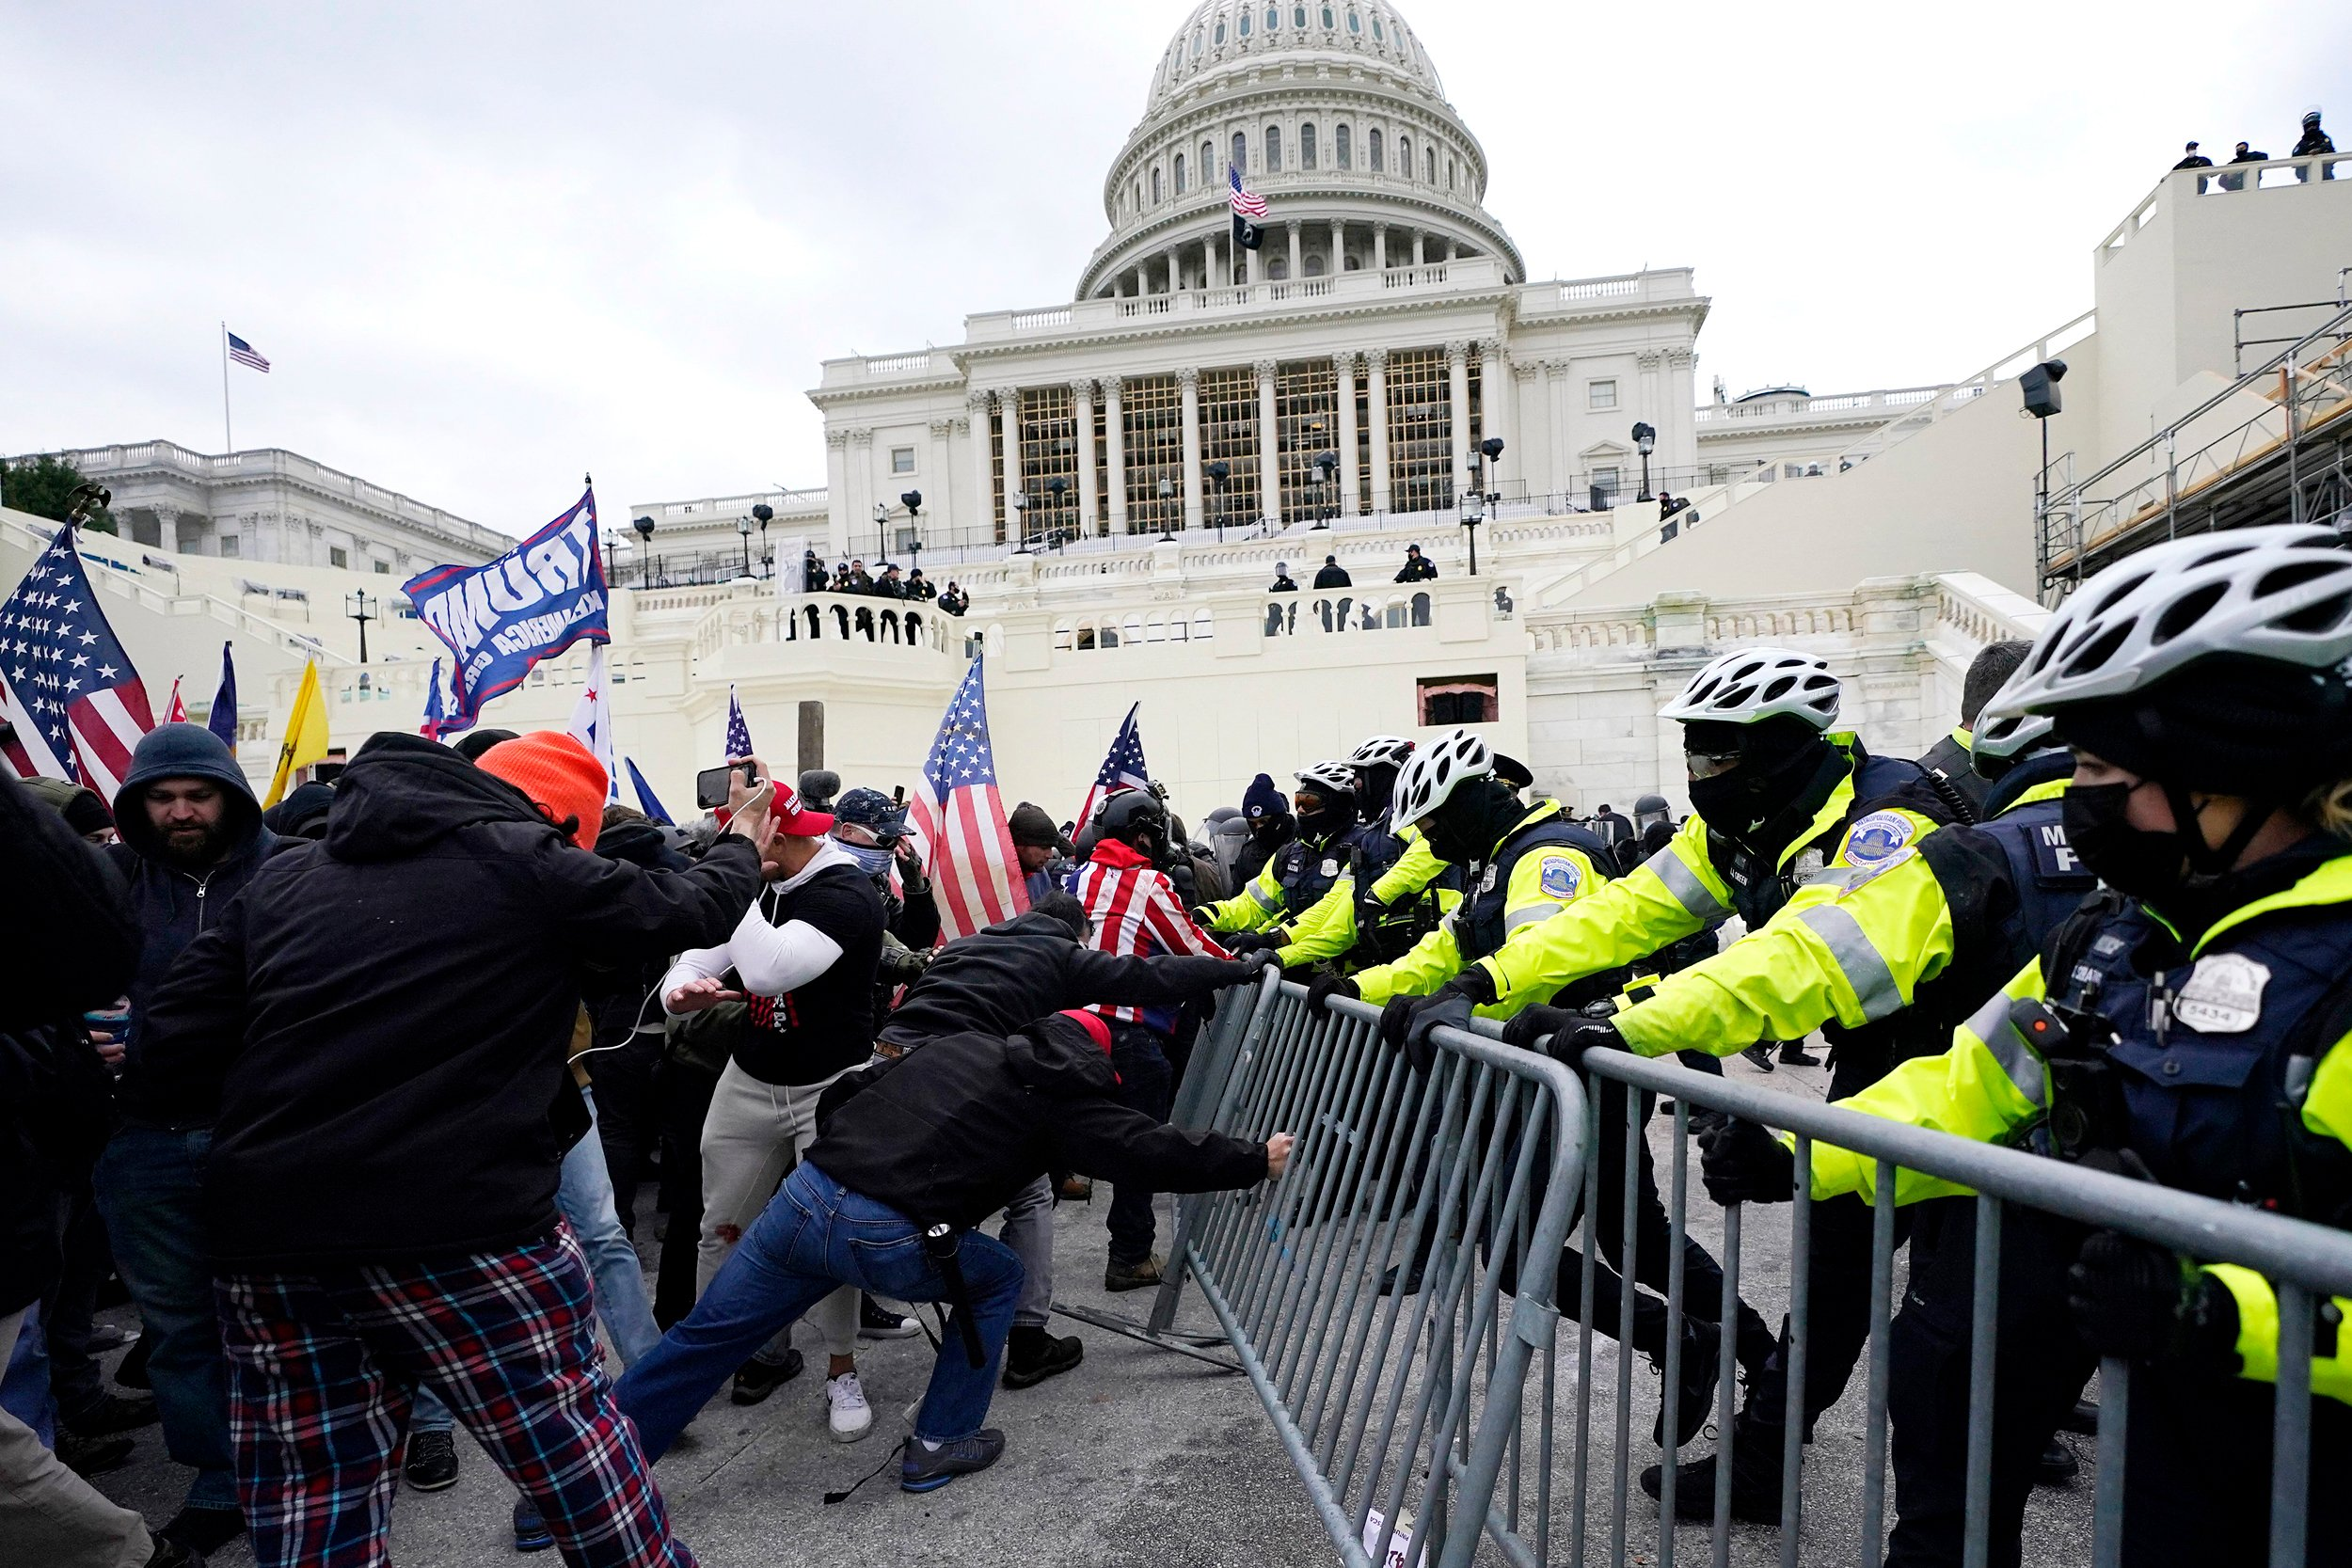 Media: FBI and NYPD warned Capitol Police of impending riots